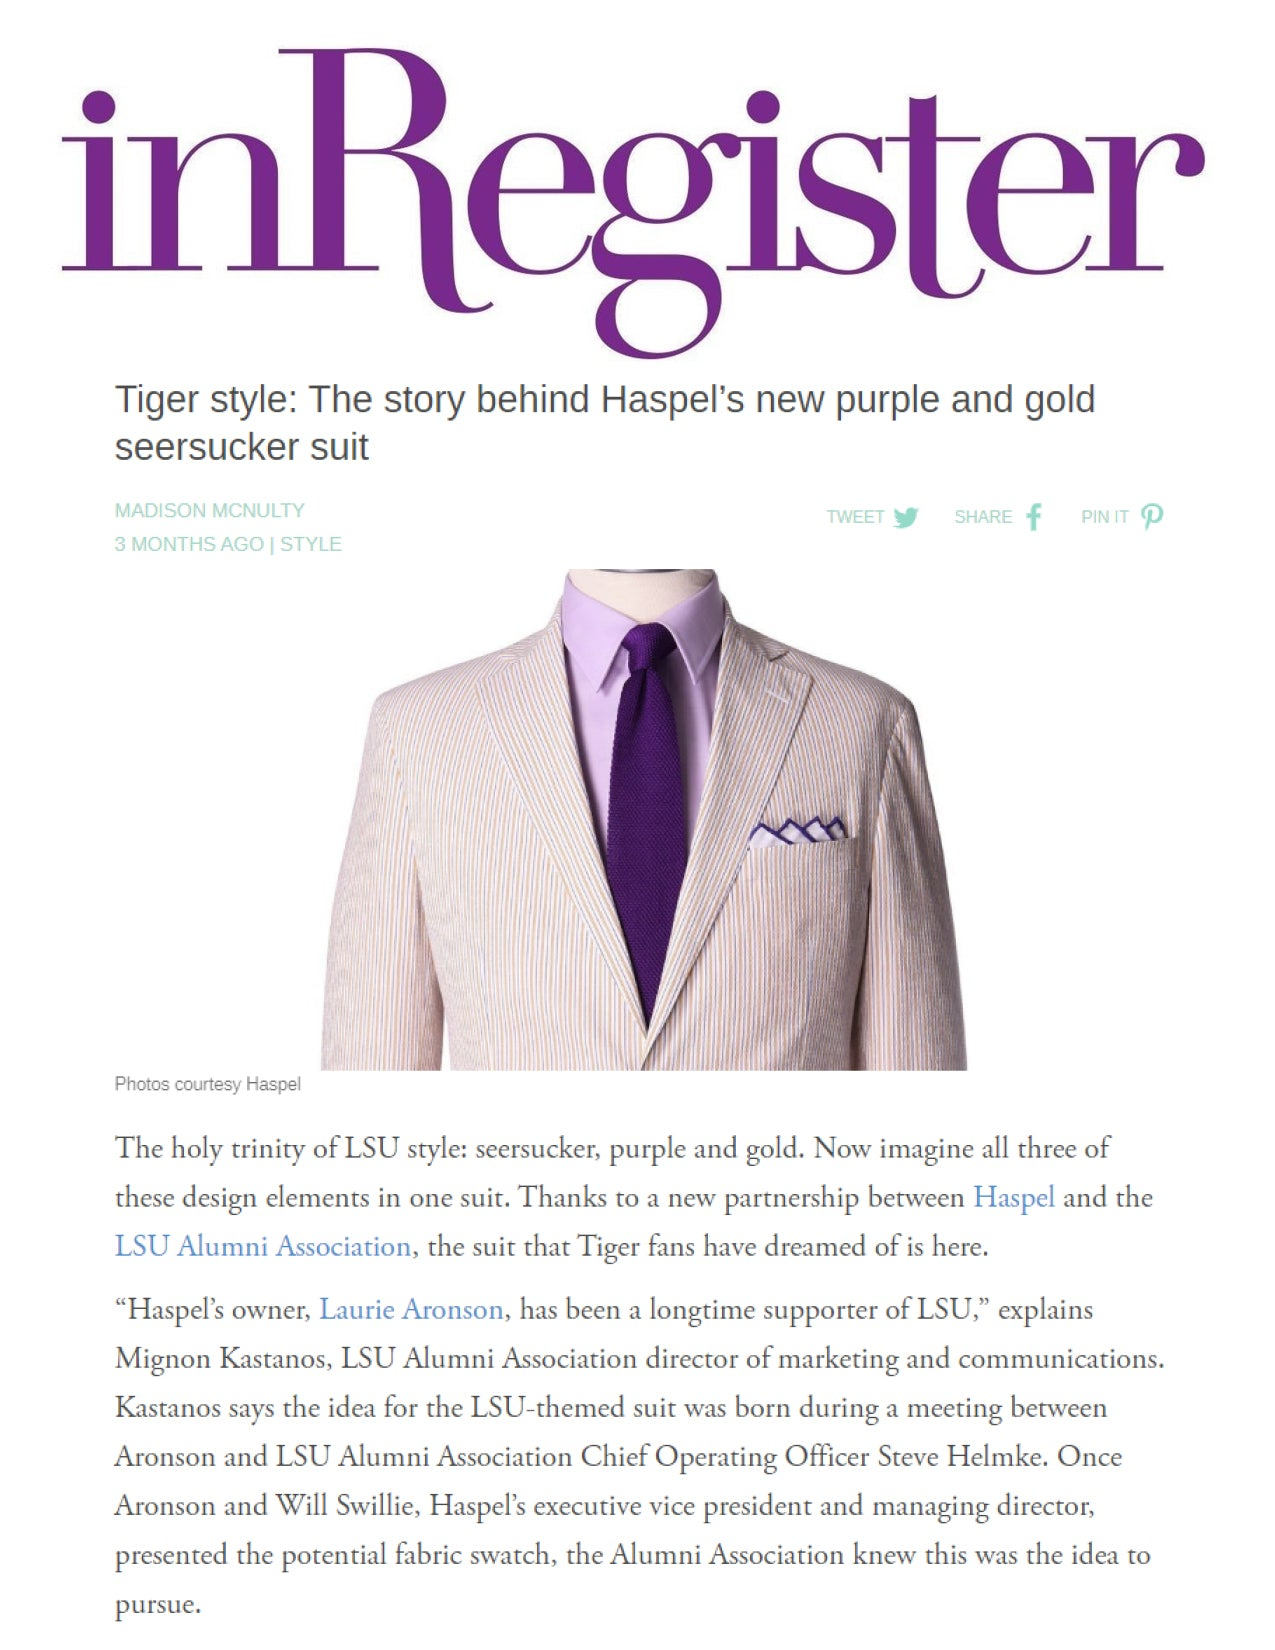 Tiger style: The story behind Haspel's new purple and gold seersucker suit | InRegister | SEPTEMBER 2019